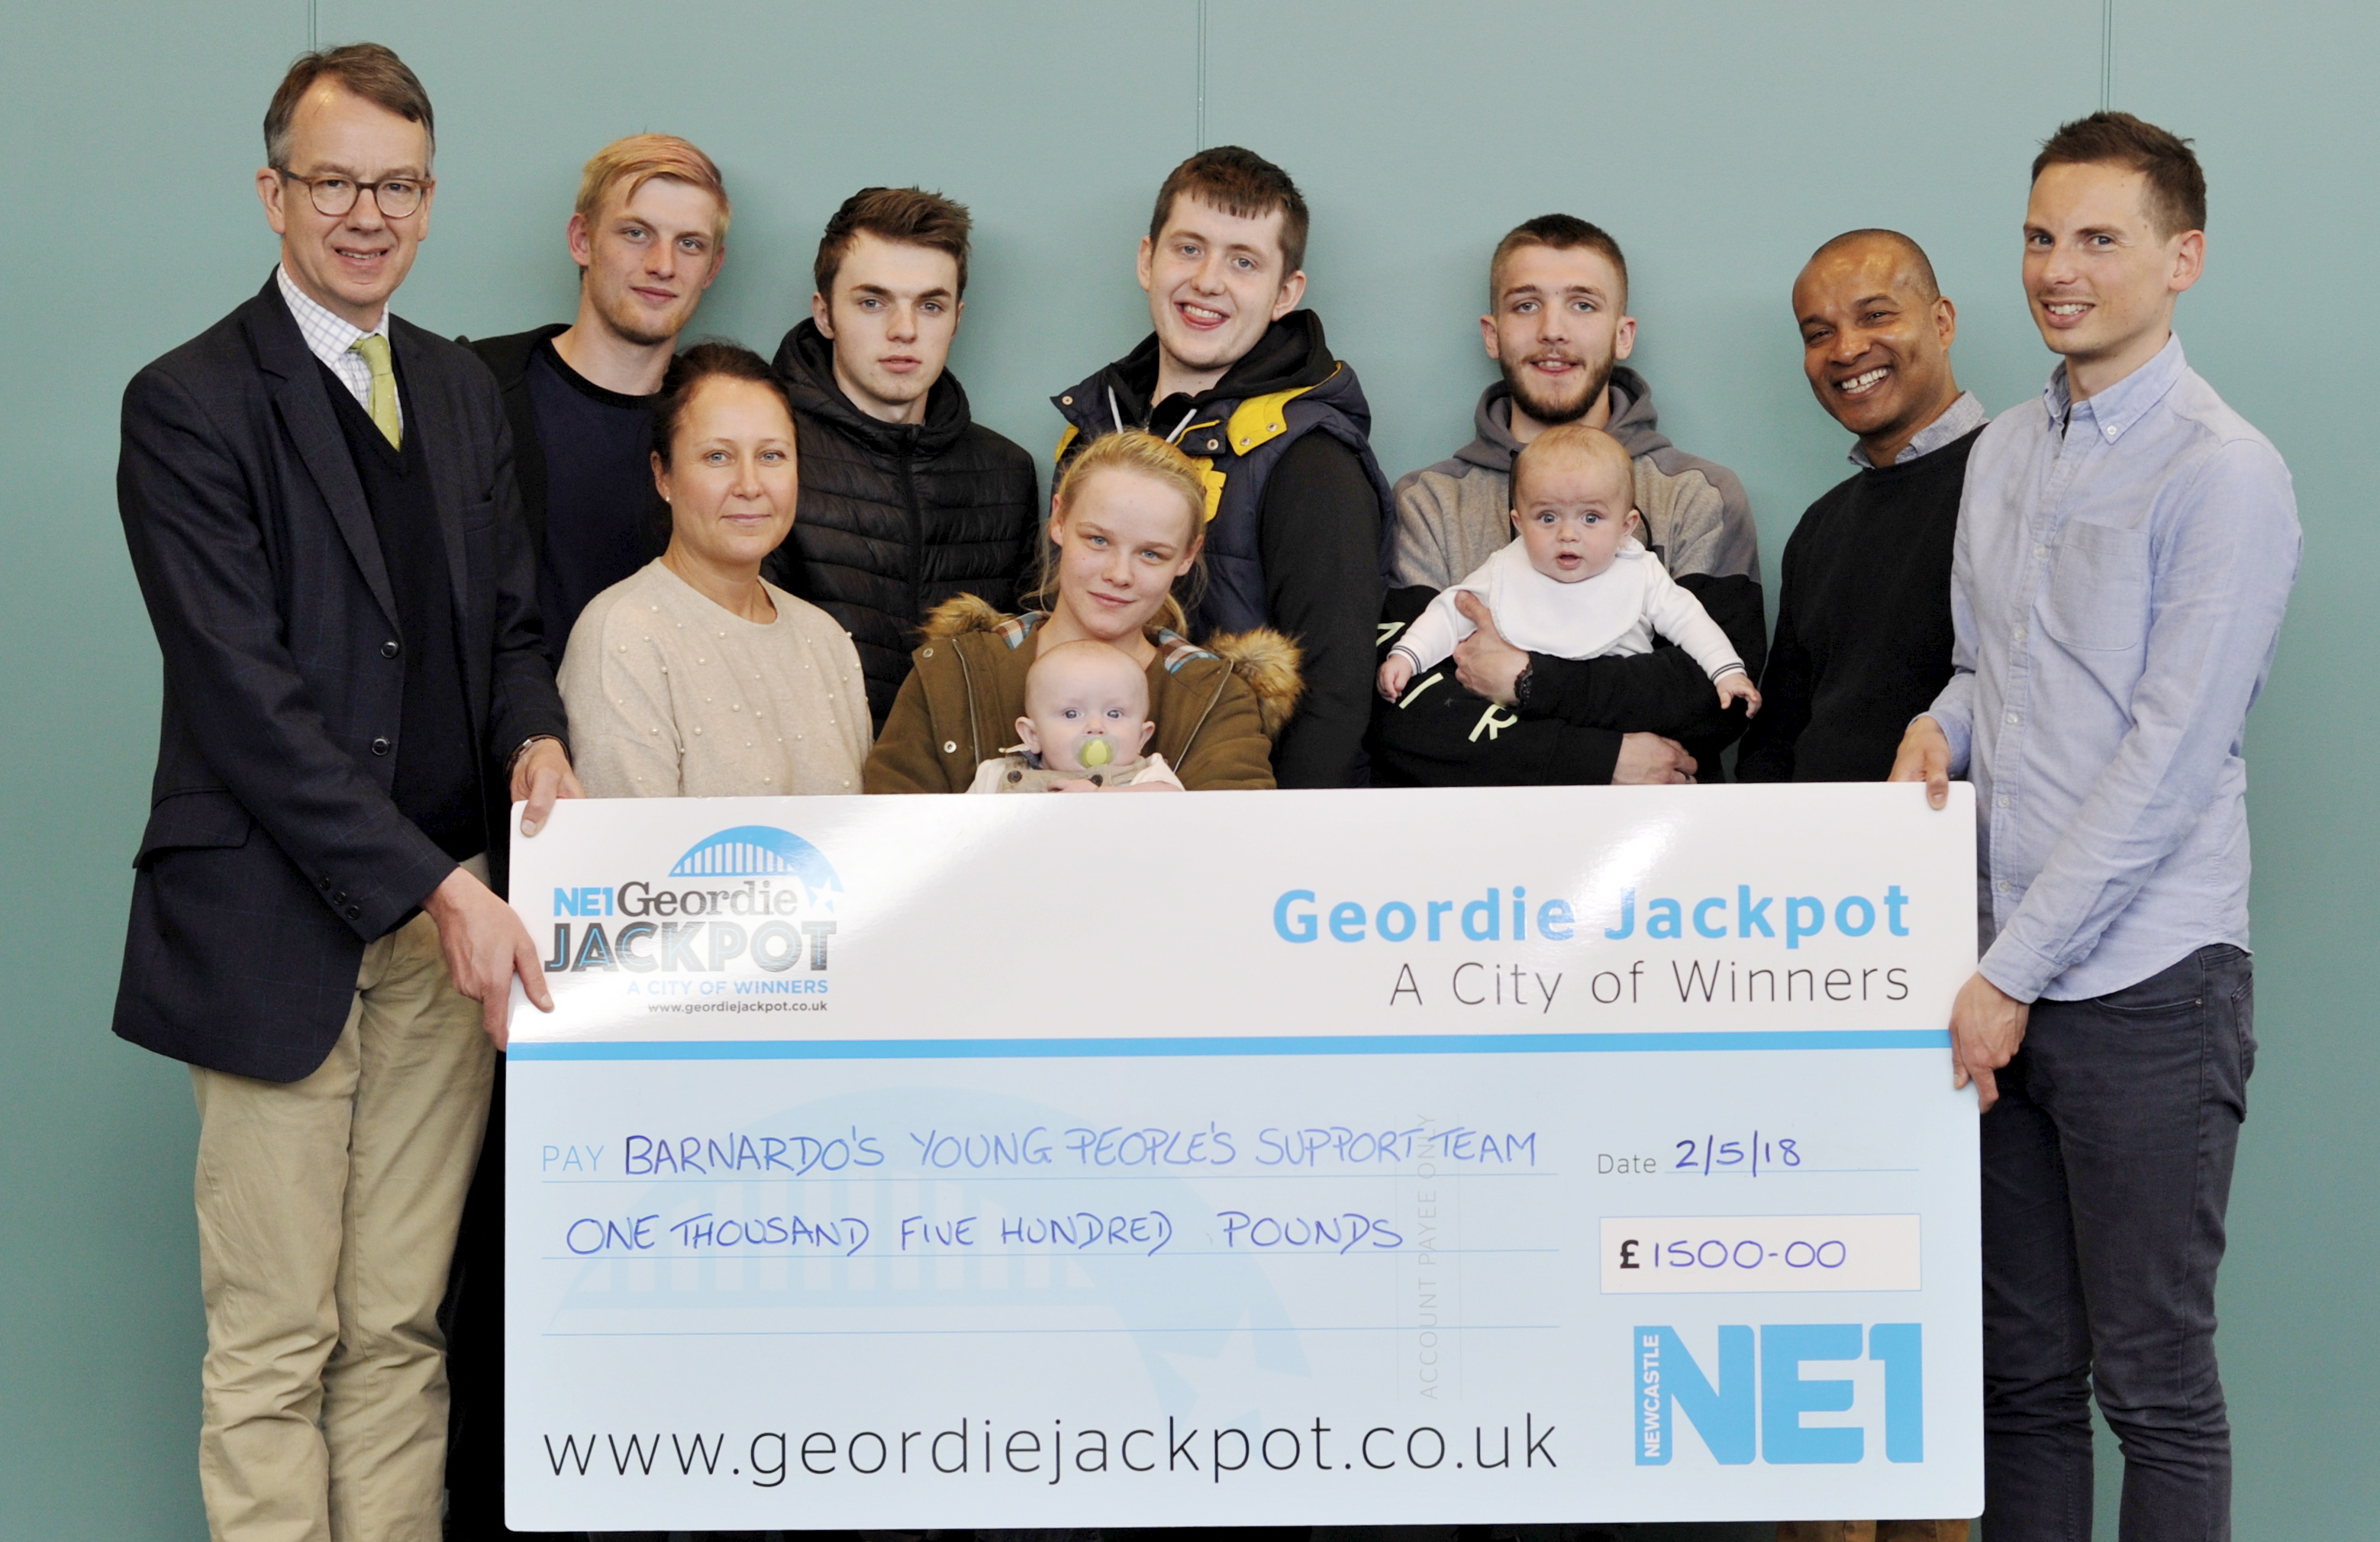 Barnardo's is the first North East charity to benefit from the Geordie Jackpot